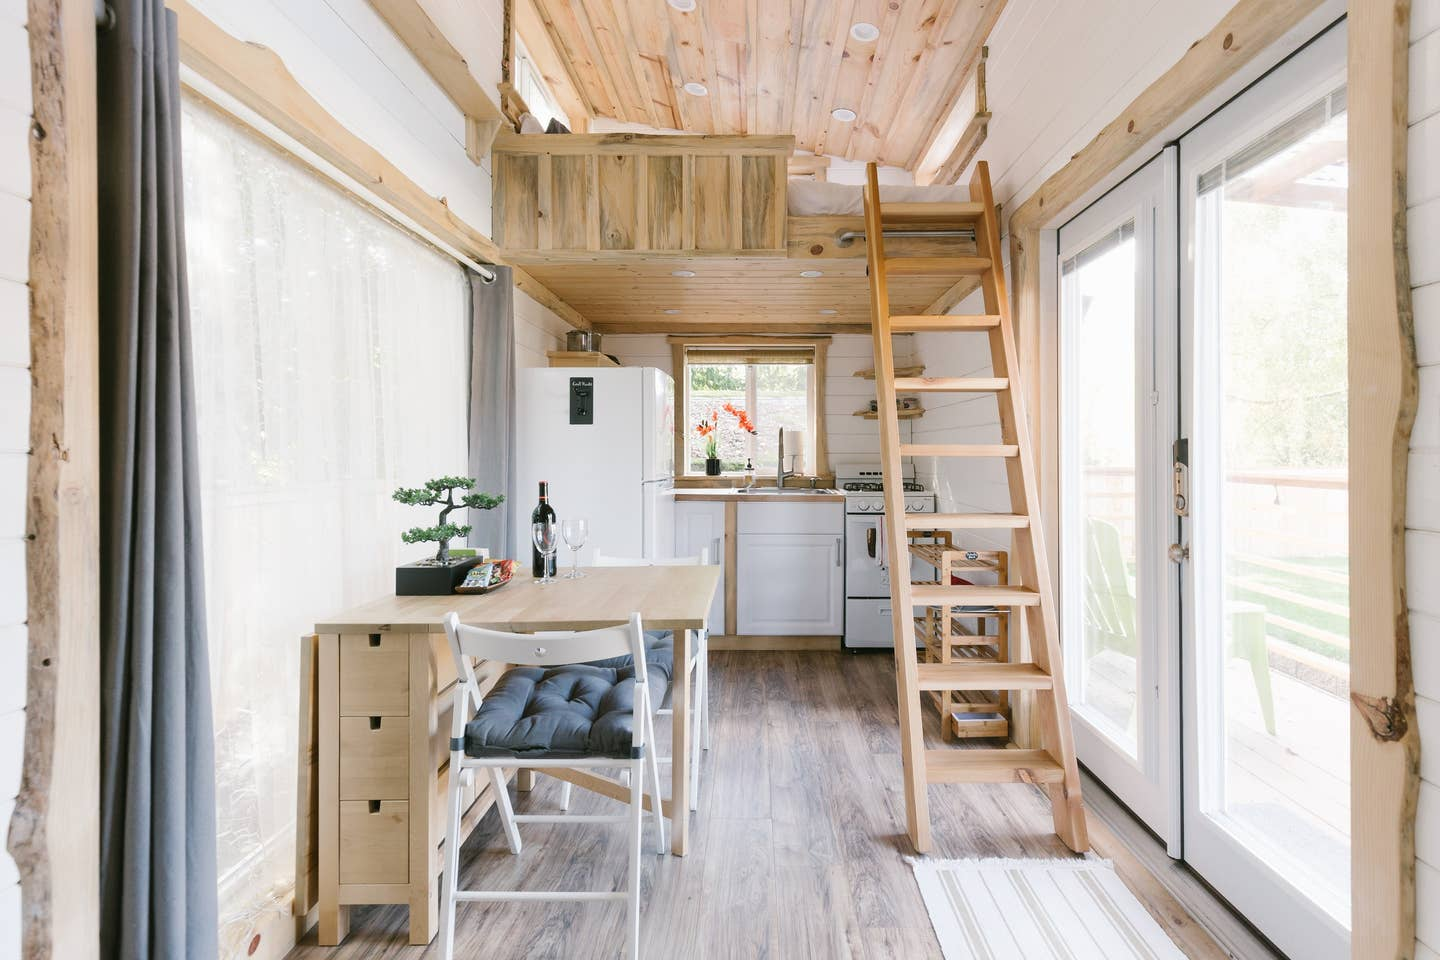 20 Tiny Houses in Washington You Can Rent on Airbnb in 2020!